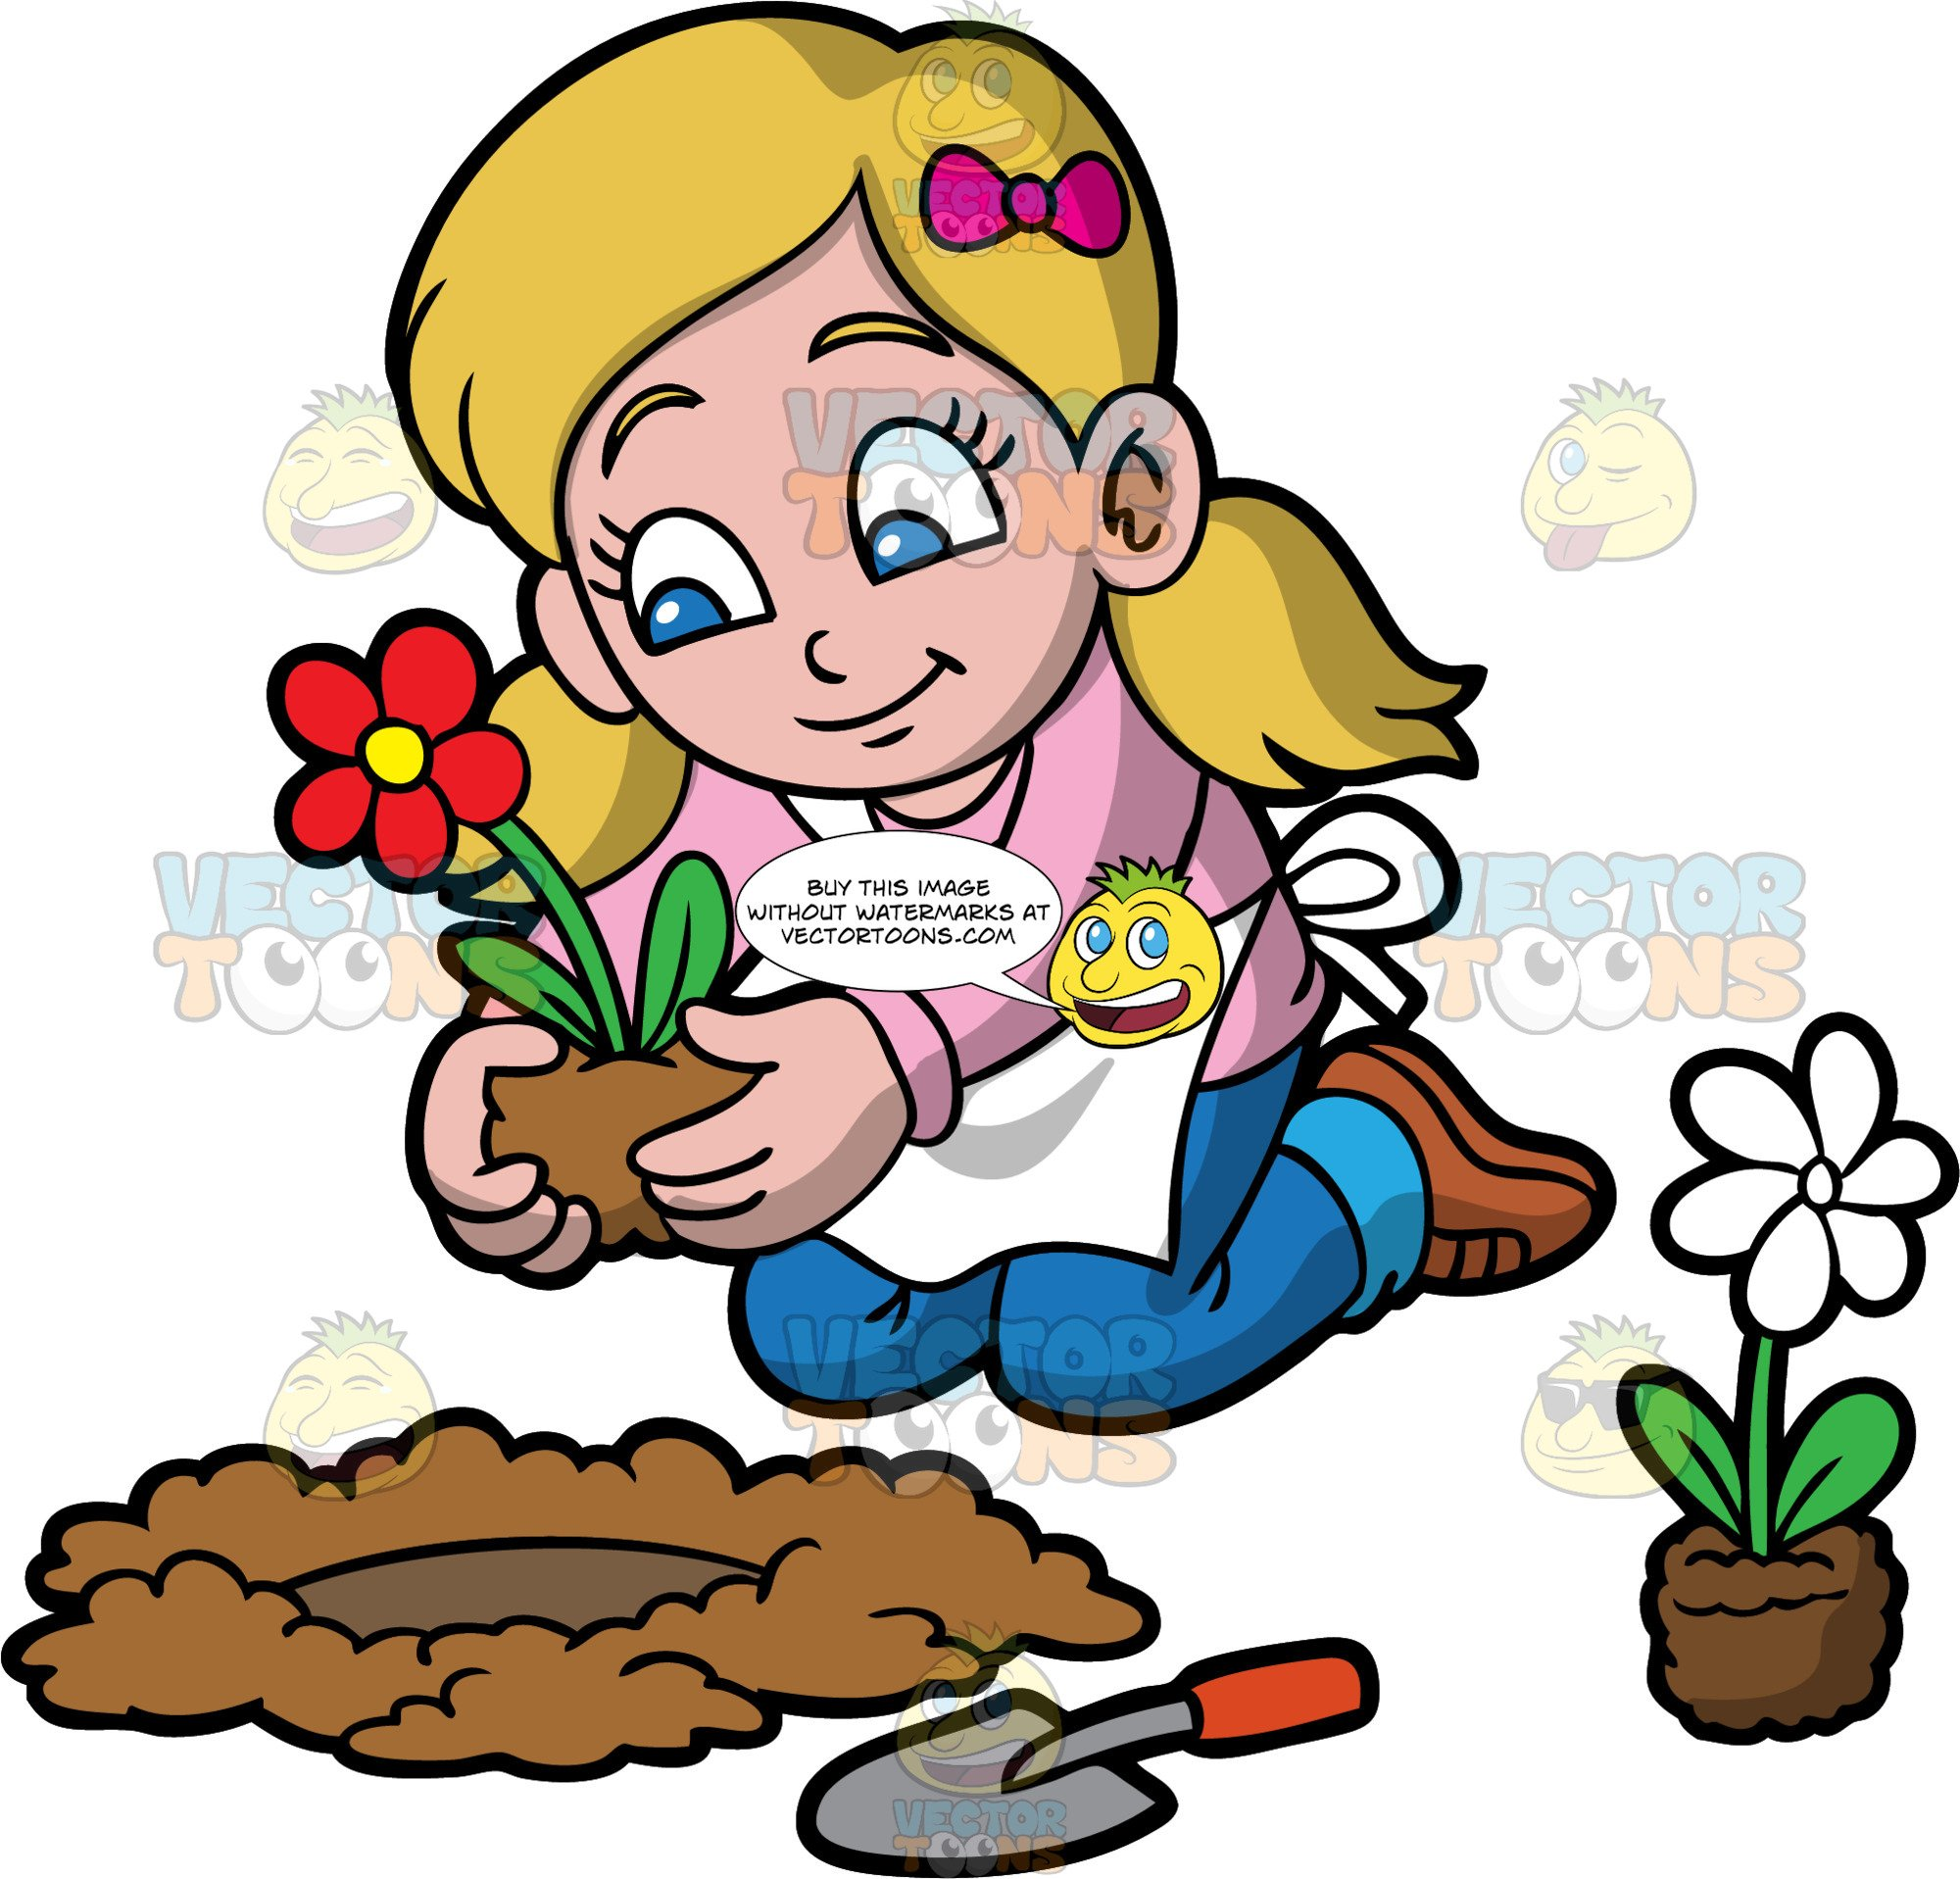 A Girl Planting A Red Flower In A Hole In The Ground.